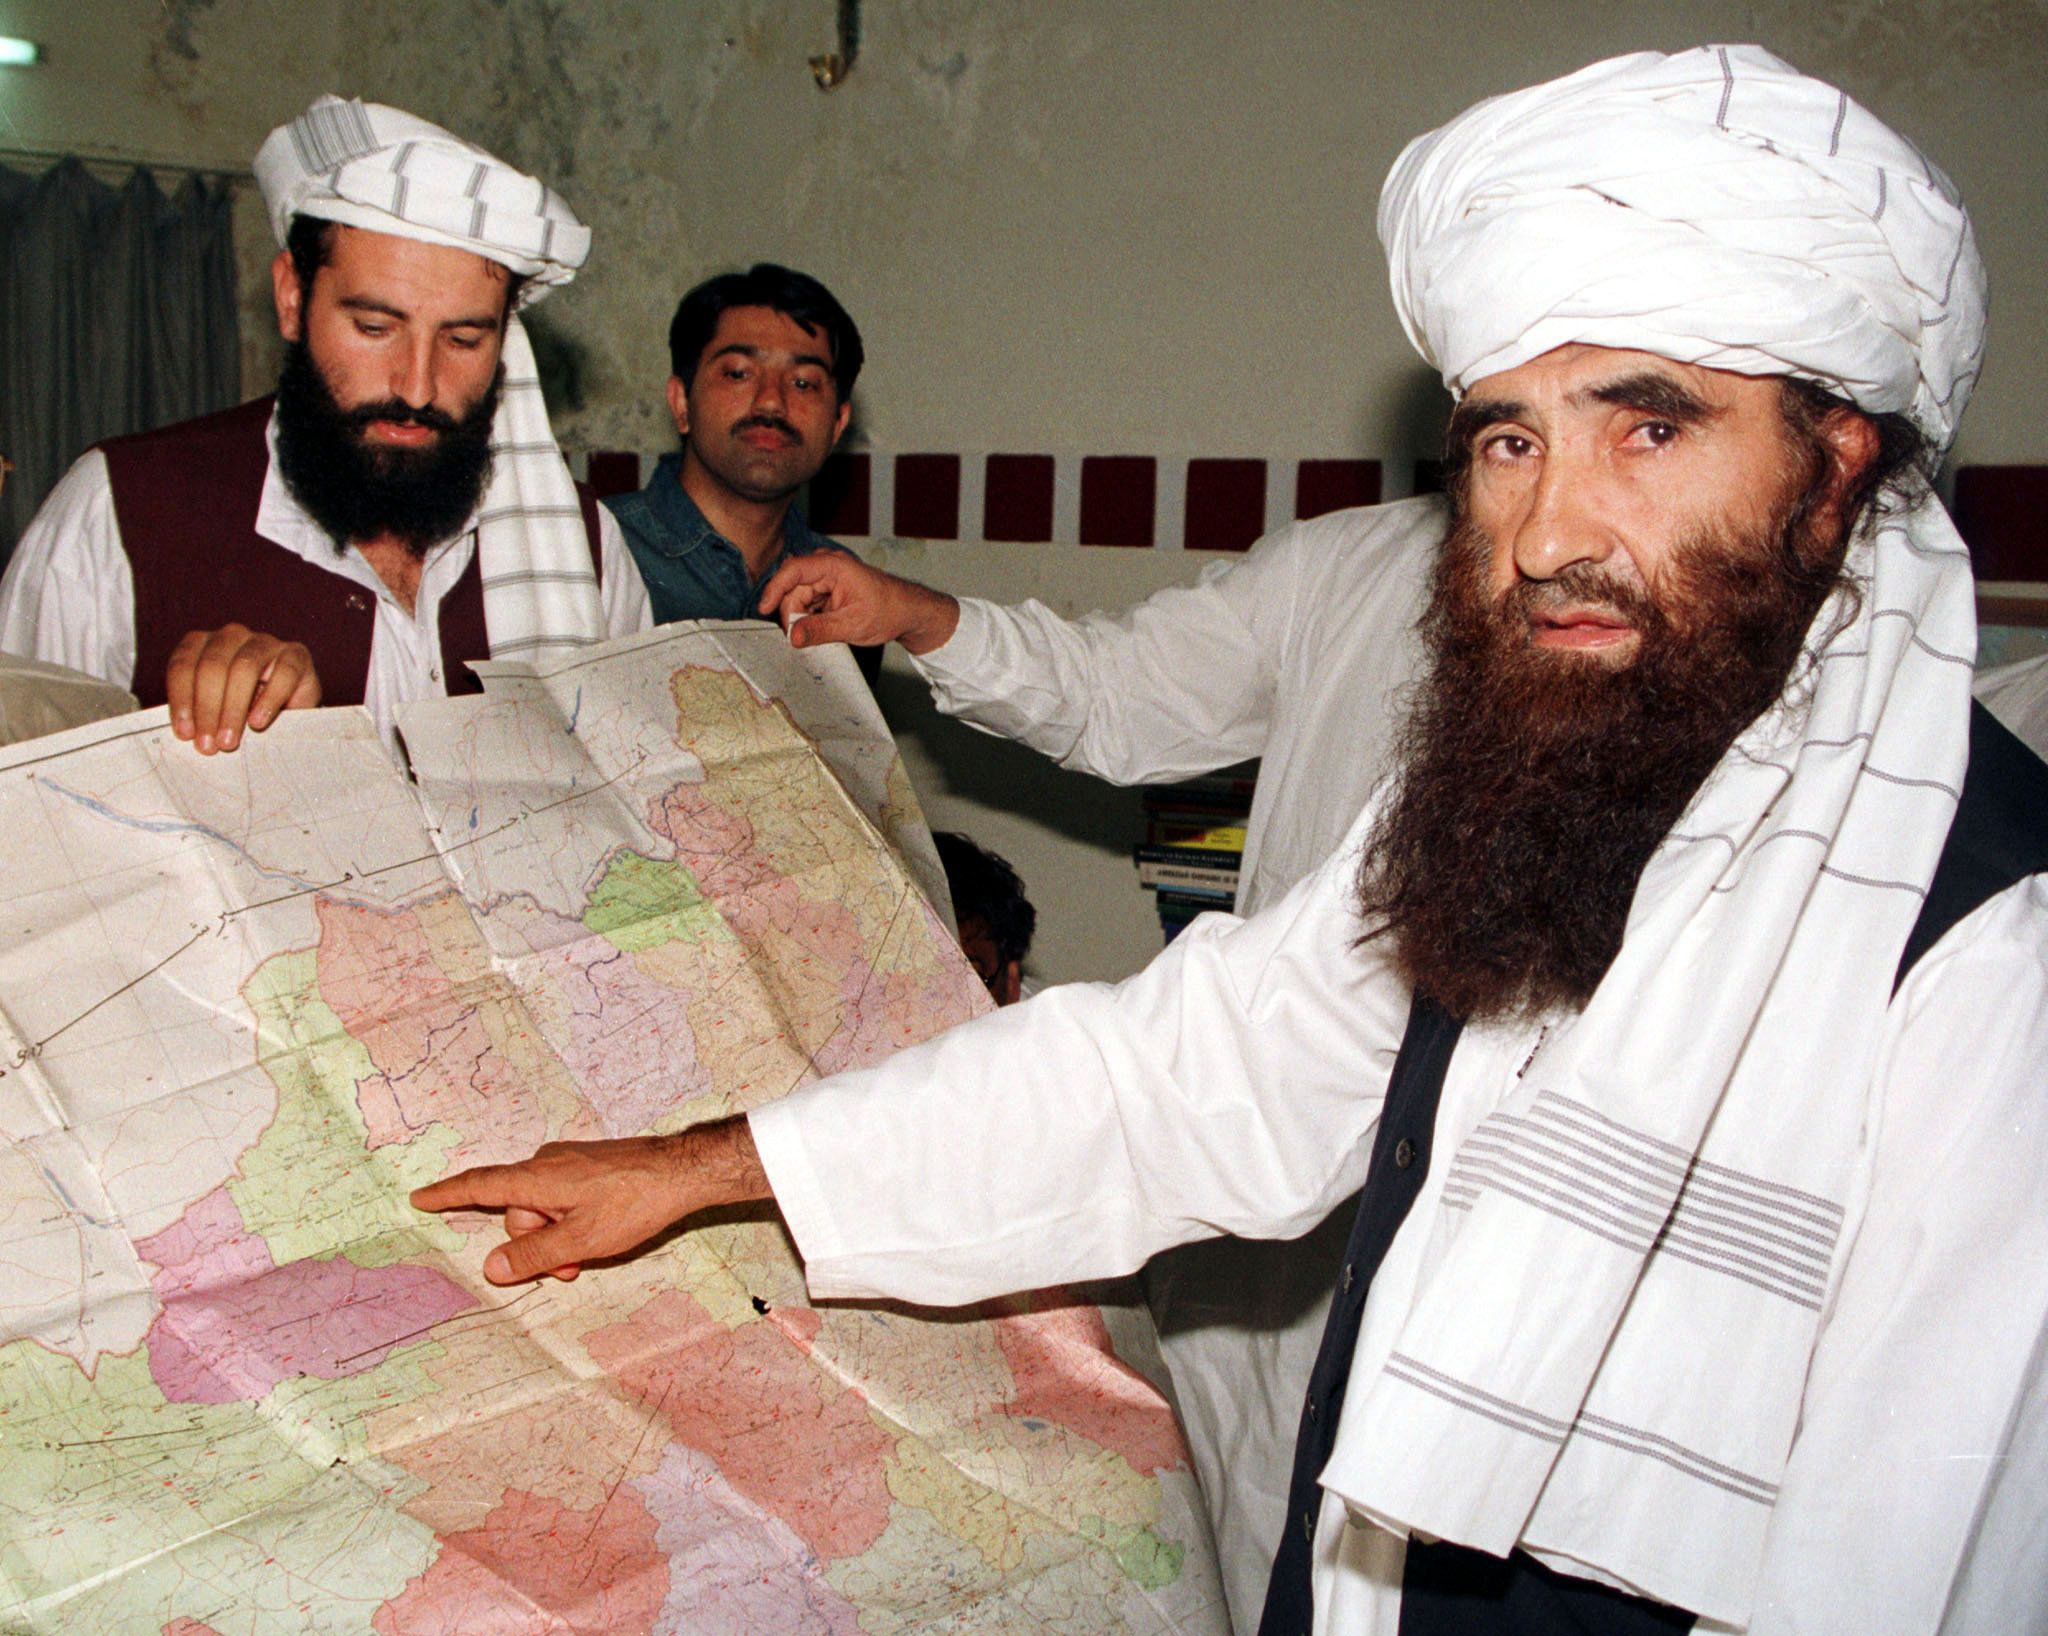 Jalaluddin Haqqani (R), the Taliban's Minister for Tribal Affairs, points to a map of Afghanistan during a visit to Islamabad, Pakistan while his son Naziruddin (L) looks on in this October 19, 2001 file photograph. Al Qaeda, the Pakistani Taliban and the Haqqani network -- blamed for a Sept. 13, 2011 attack on the U.S. embassy in Kabul --  picked the most ruthless fighters from their ranks in 2009 to form the Khurasan unit, for a special mission.  CIA pilots, who remotely operate the drones, could step up their pursuit of the Haqqani network leaders after an attack on the U.S. mission in Kabul last month.  To match feature PAKISTAN MILITANTS/HITSQUAD   REUTERS/Stringer/Files  (PAKISTAN - Tags: POLITICS CONFLICT)